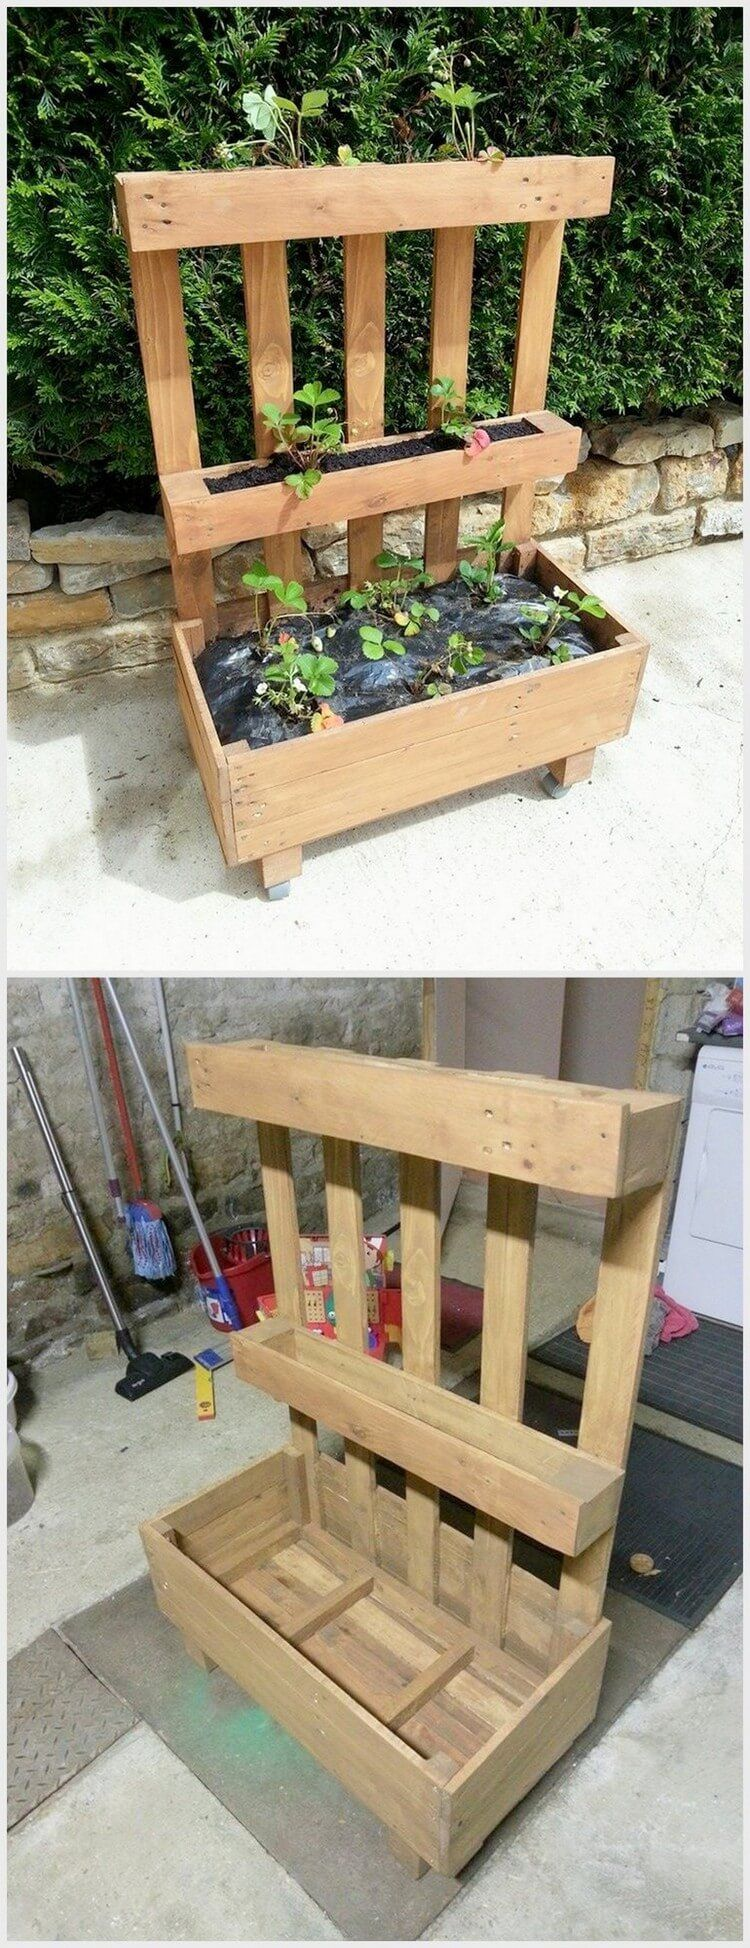 25 diy recycled wooden pallet projects try out at home on easy diy woodworking projects to decor your home kinds of wooden planters id=55135